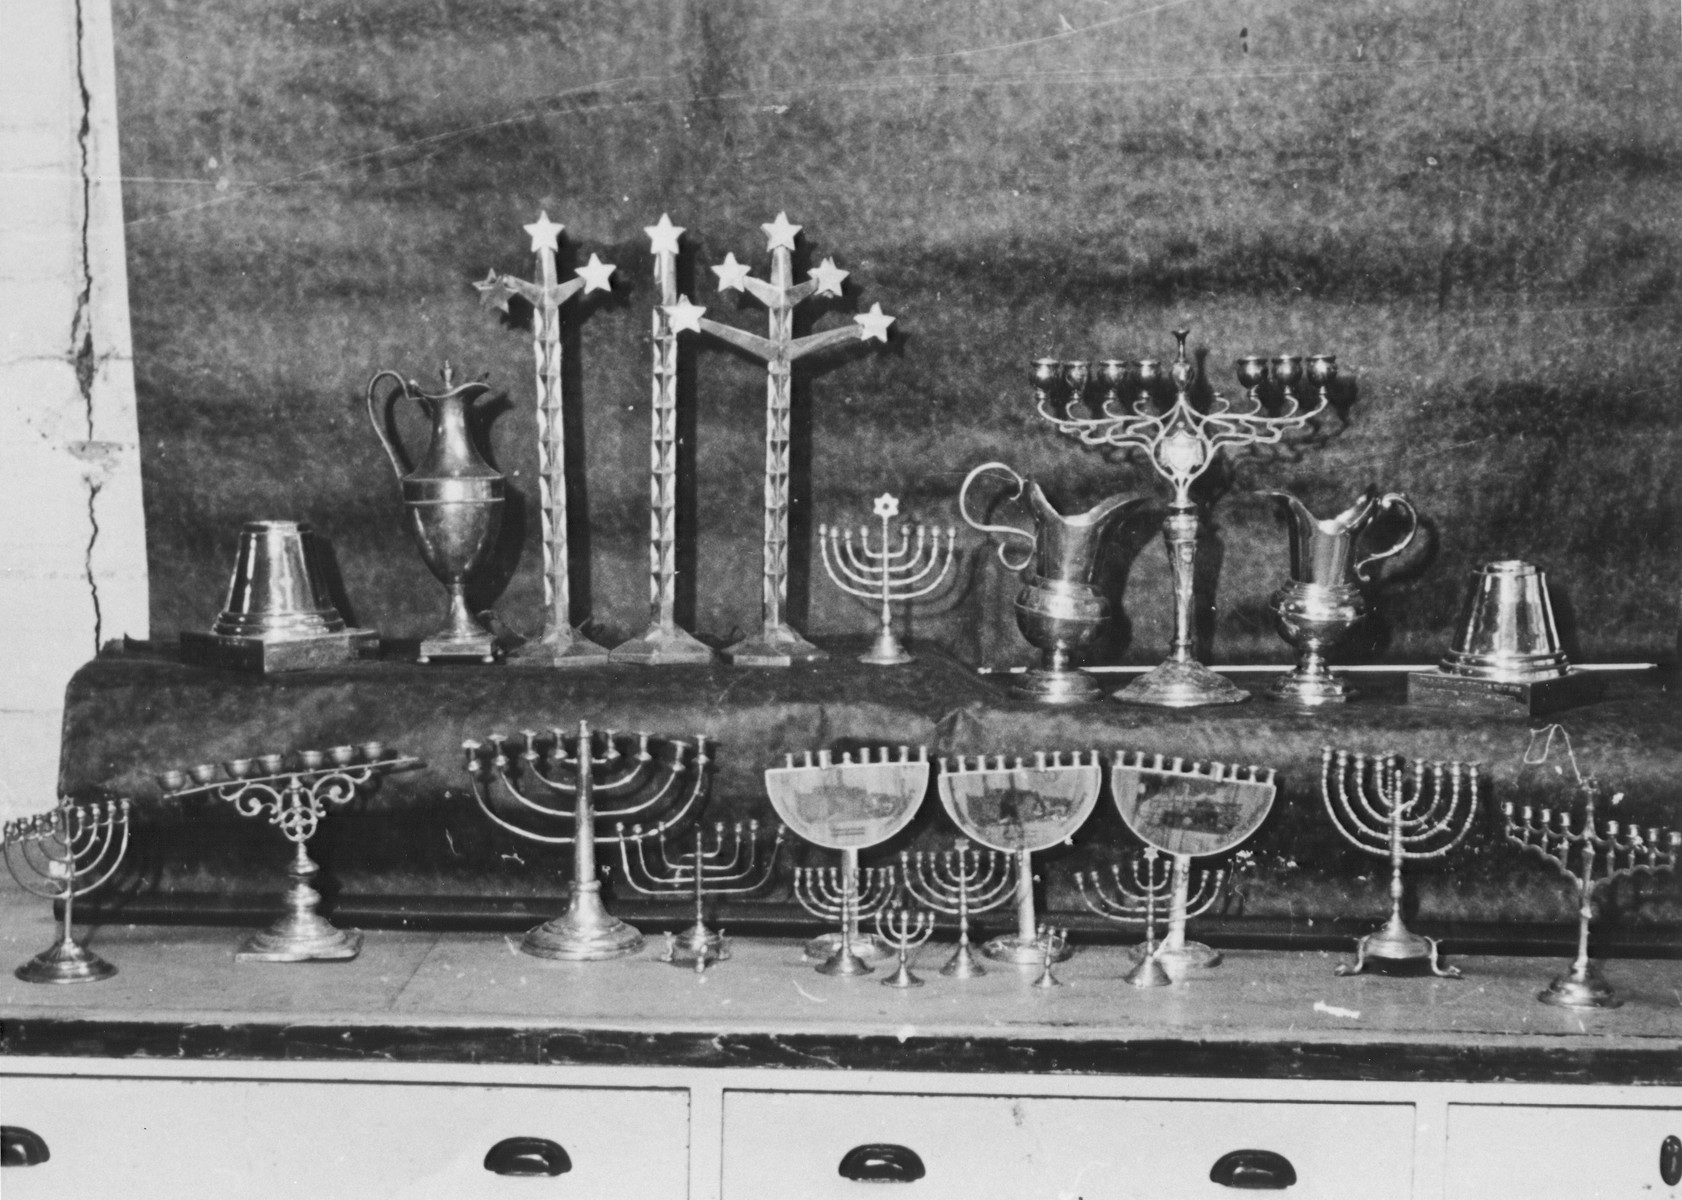 Display of silver Hanukkah menorahs and other ritual articles confiscated by the Nazis.